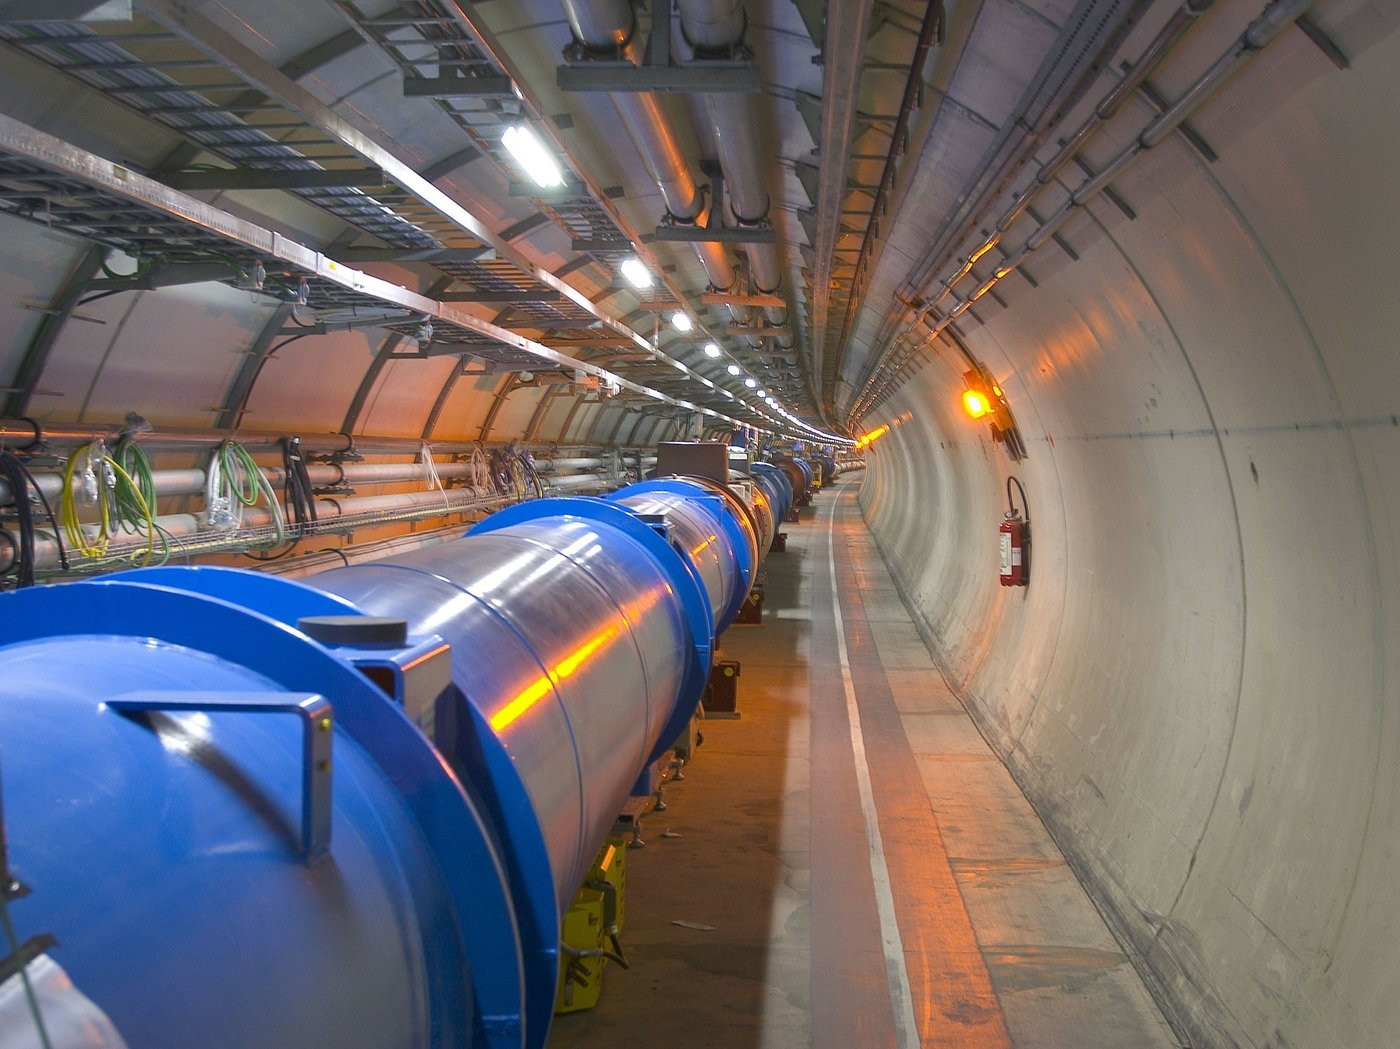 The Large Hadron Collider smashes sub-atomic particles together at enormous energies. Image c/o CERN via NPR